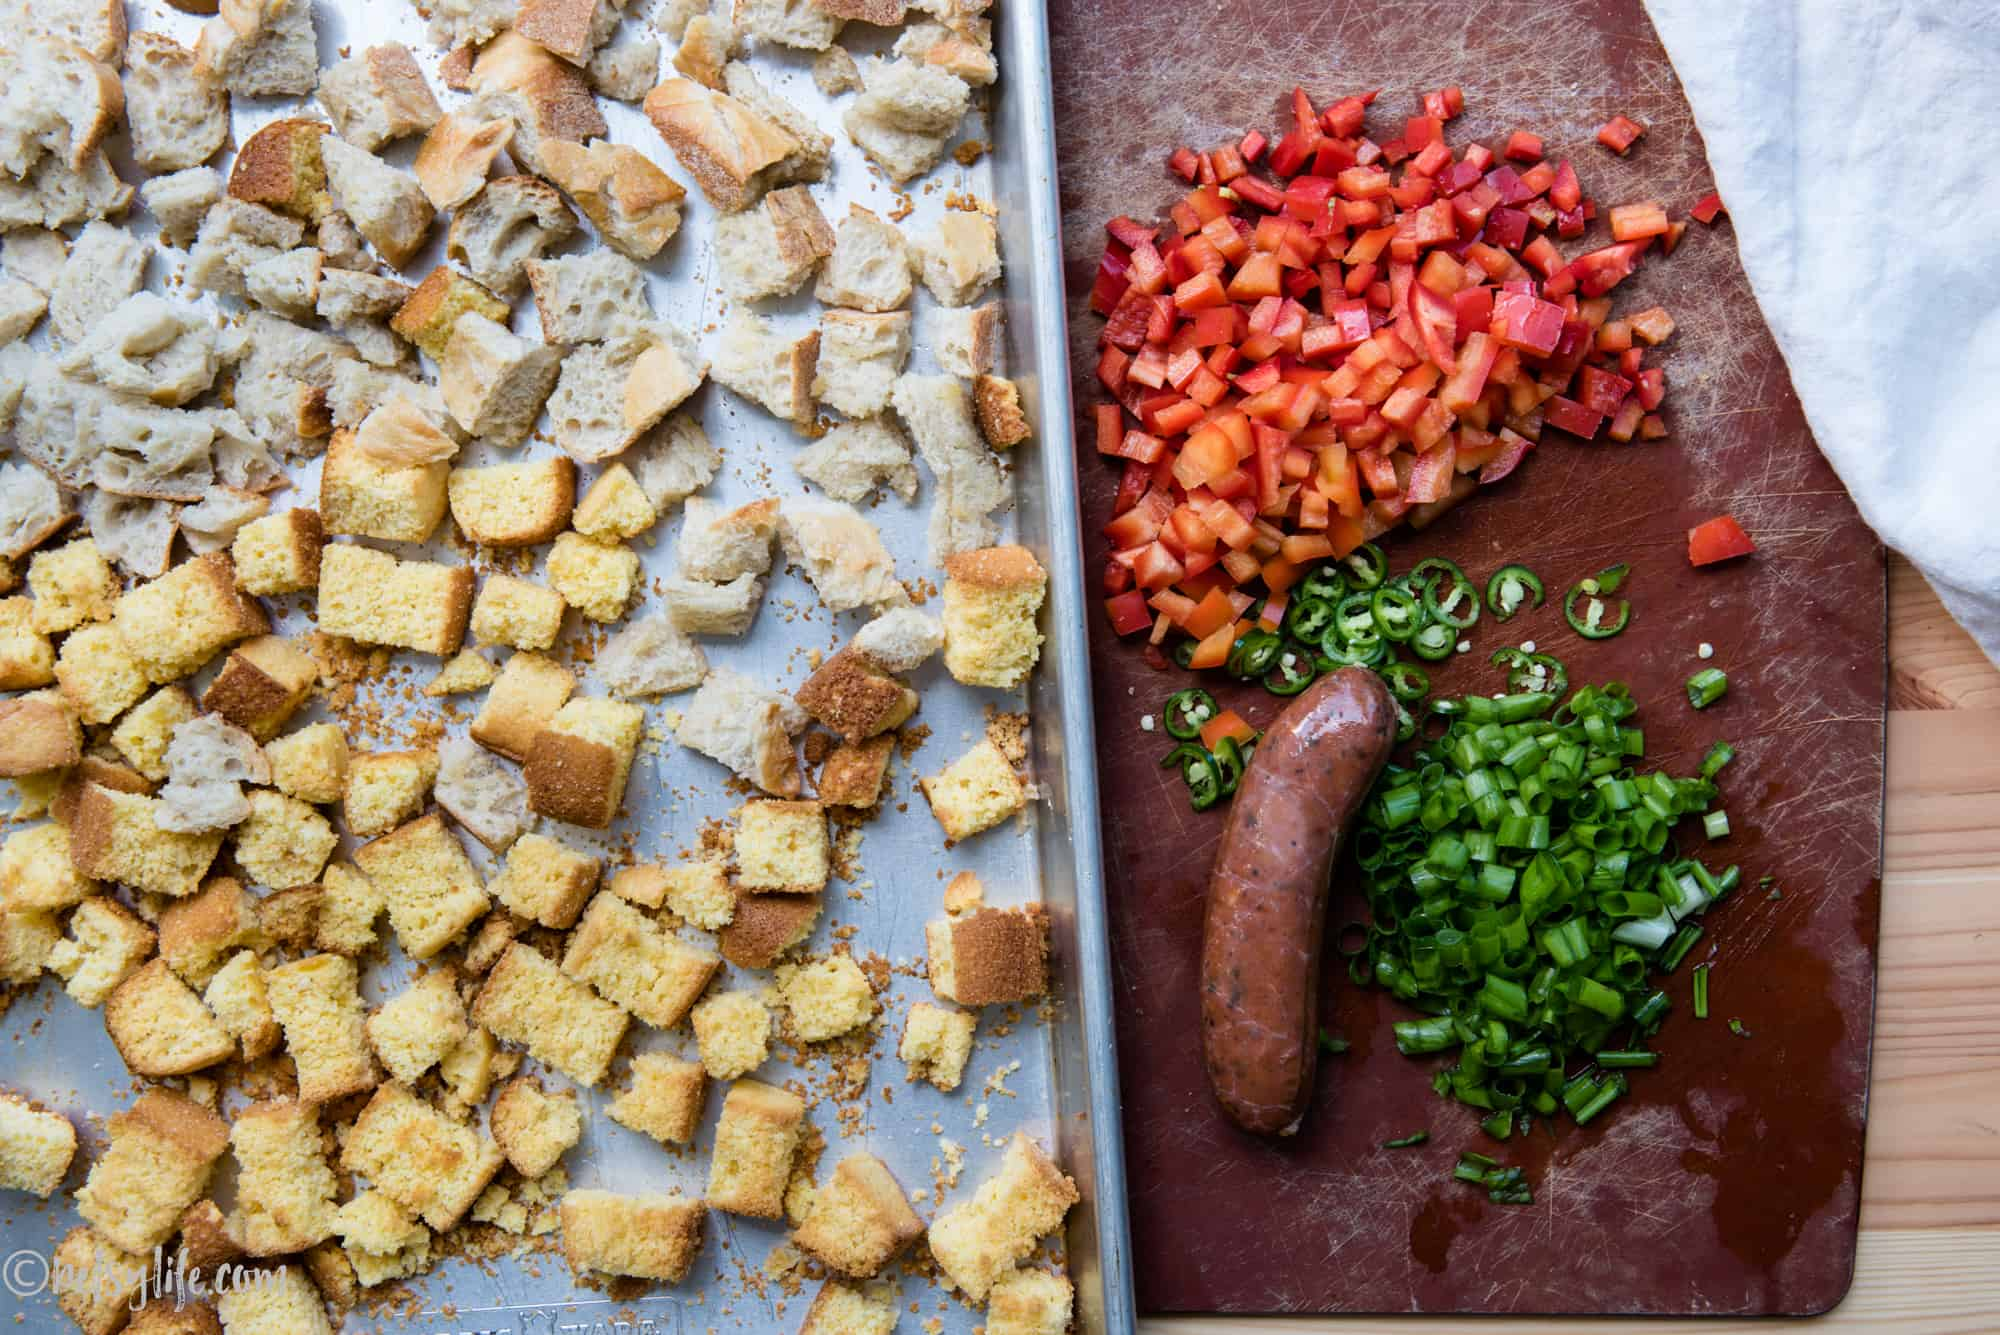 Ingredients for chorizo stuffing on a cutting board and baking sheet